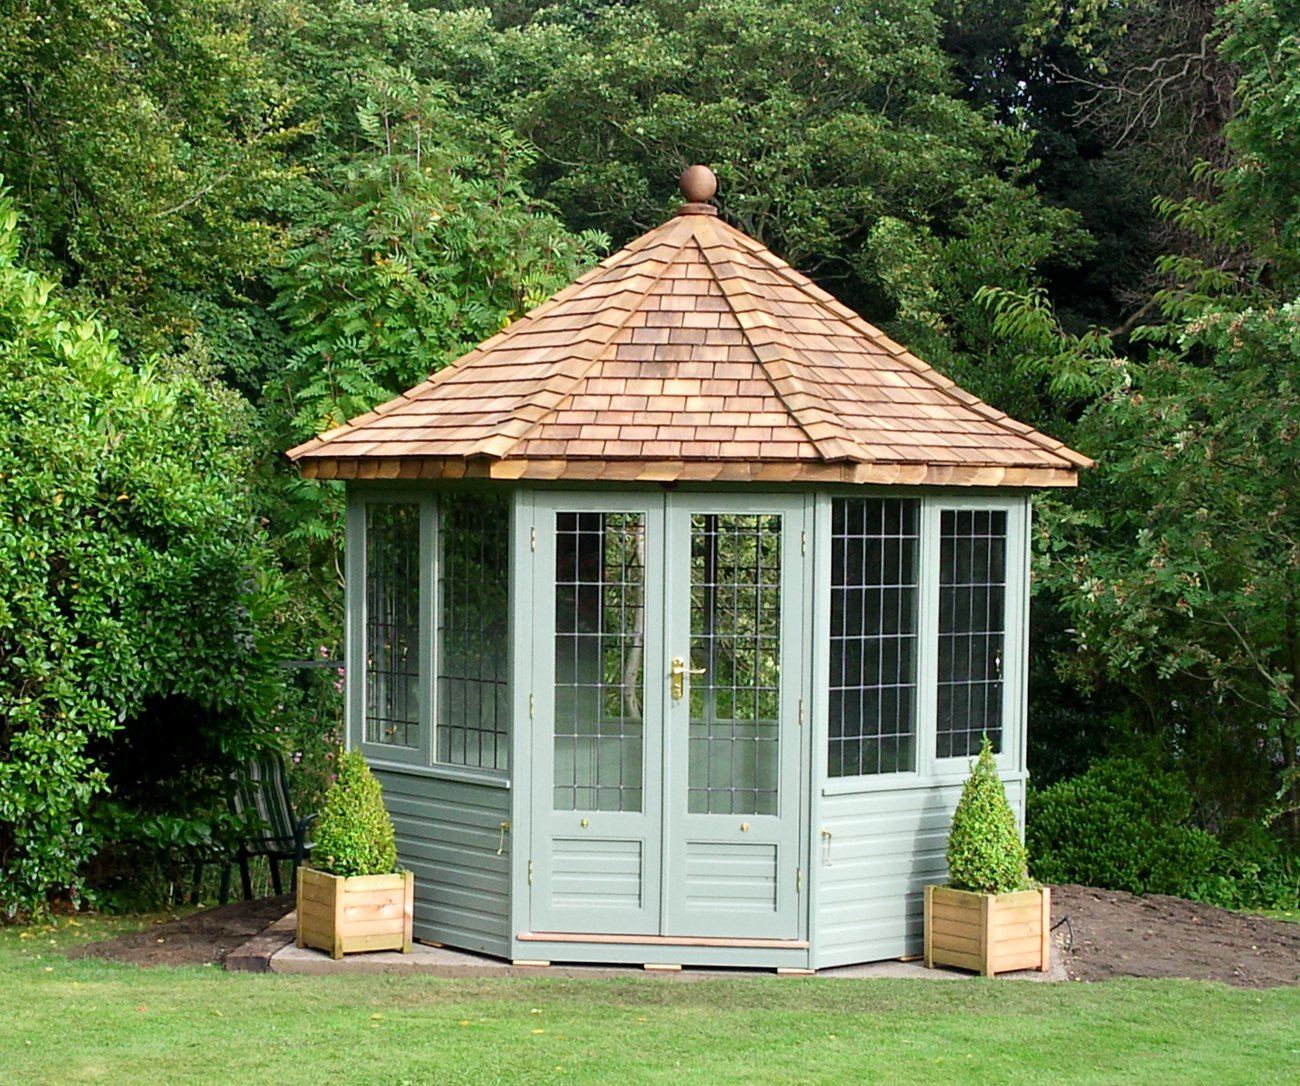 Free insulation & double glazing on all our Chelsea Summerhouses